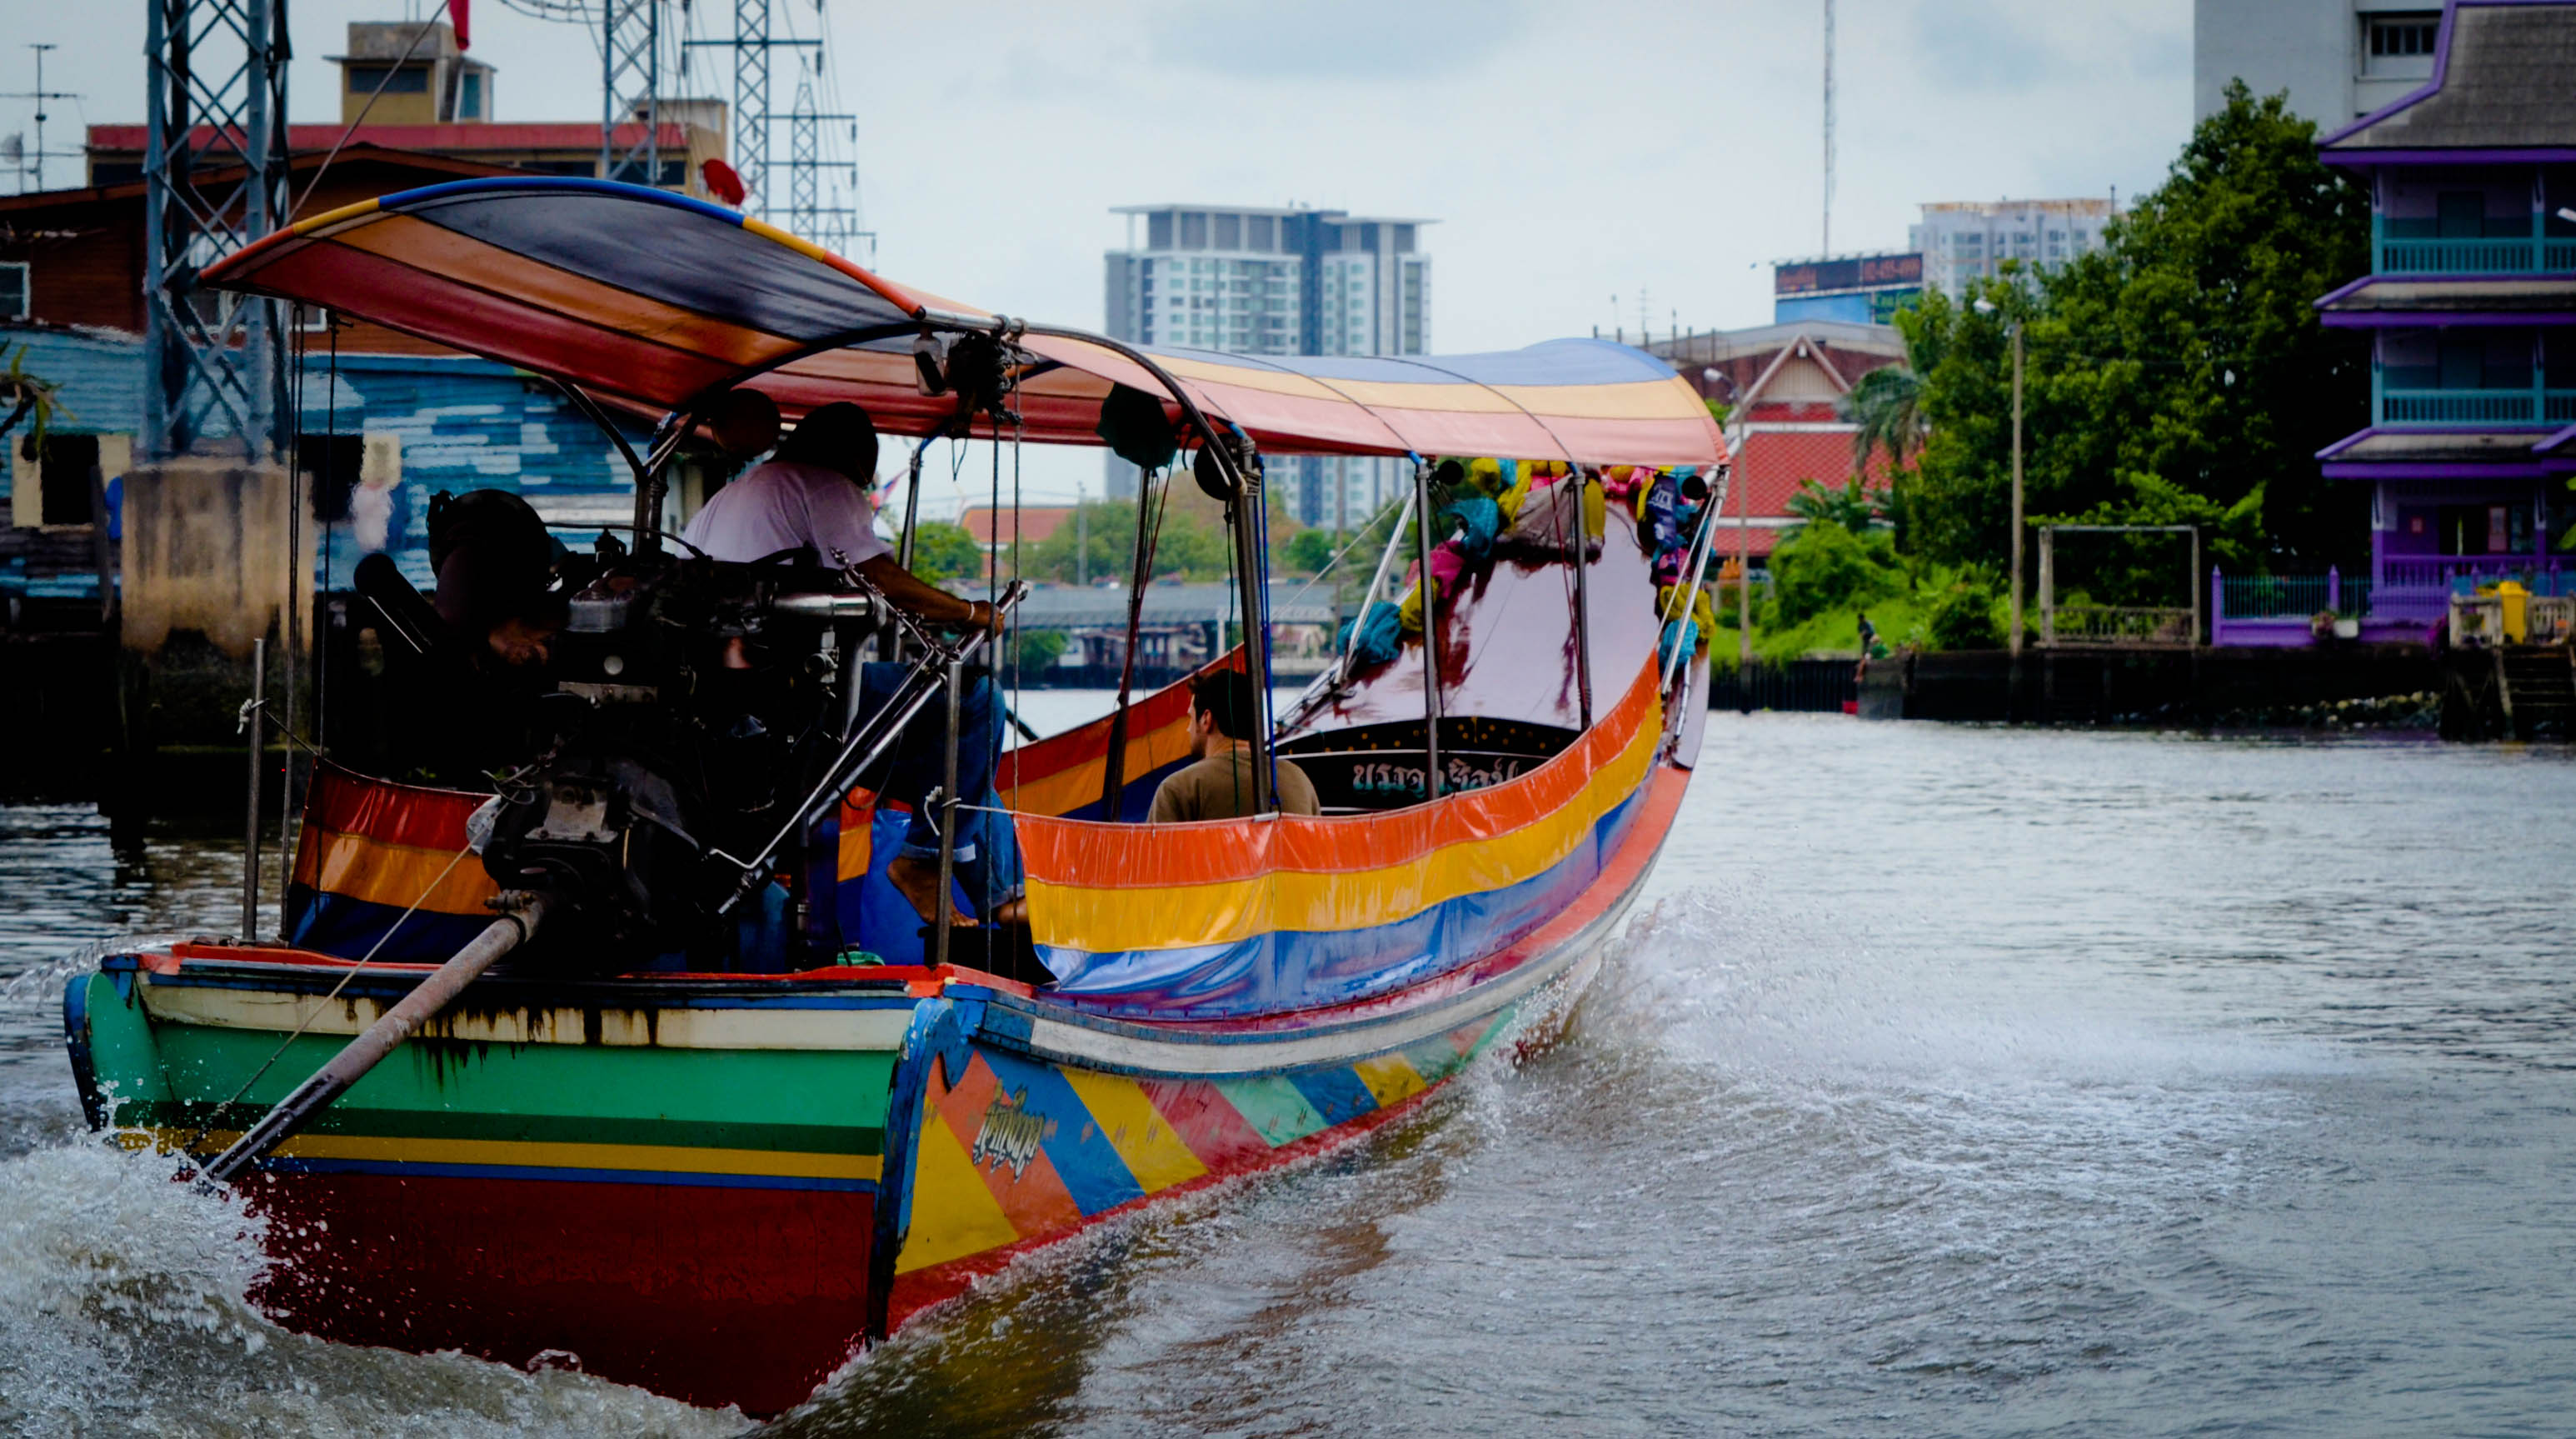 Entertainment Thai Longboat in the canals of Bangkok